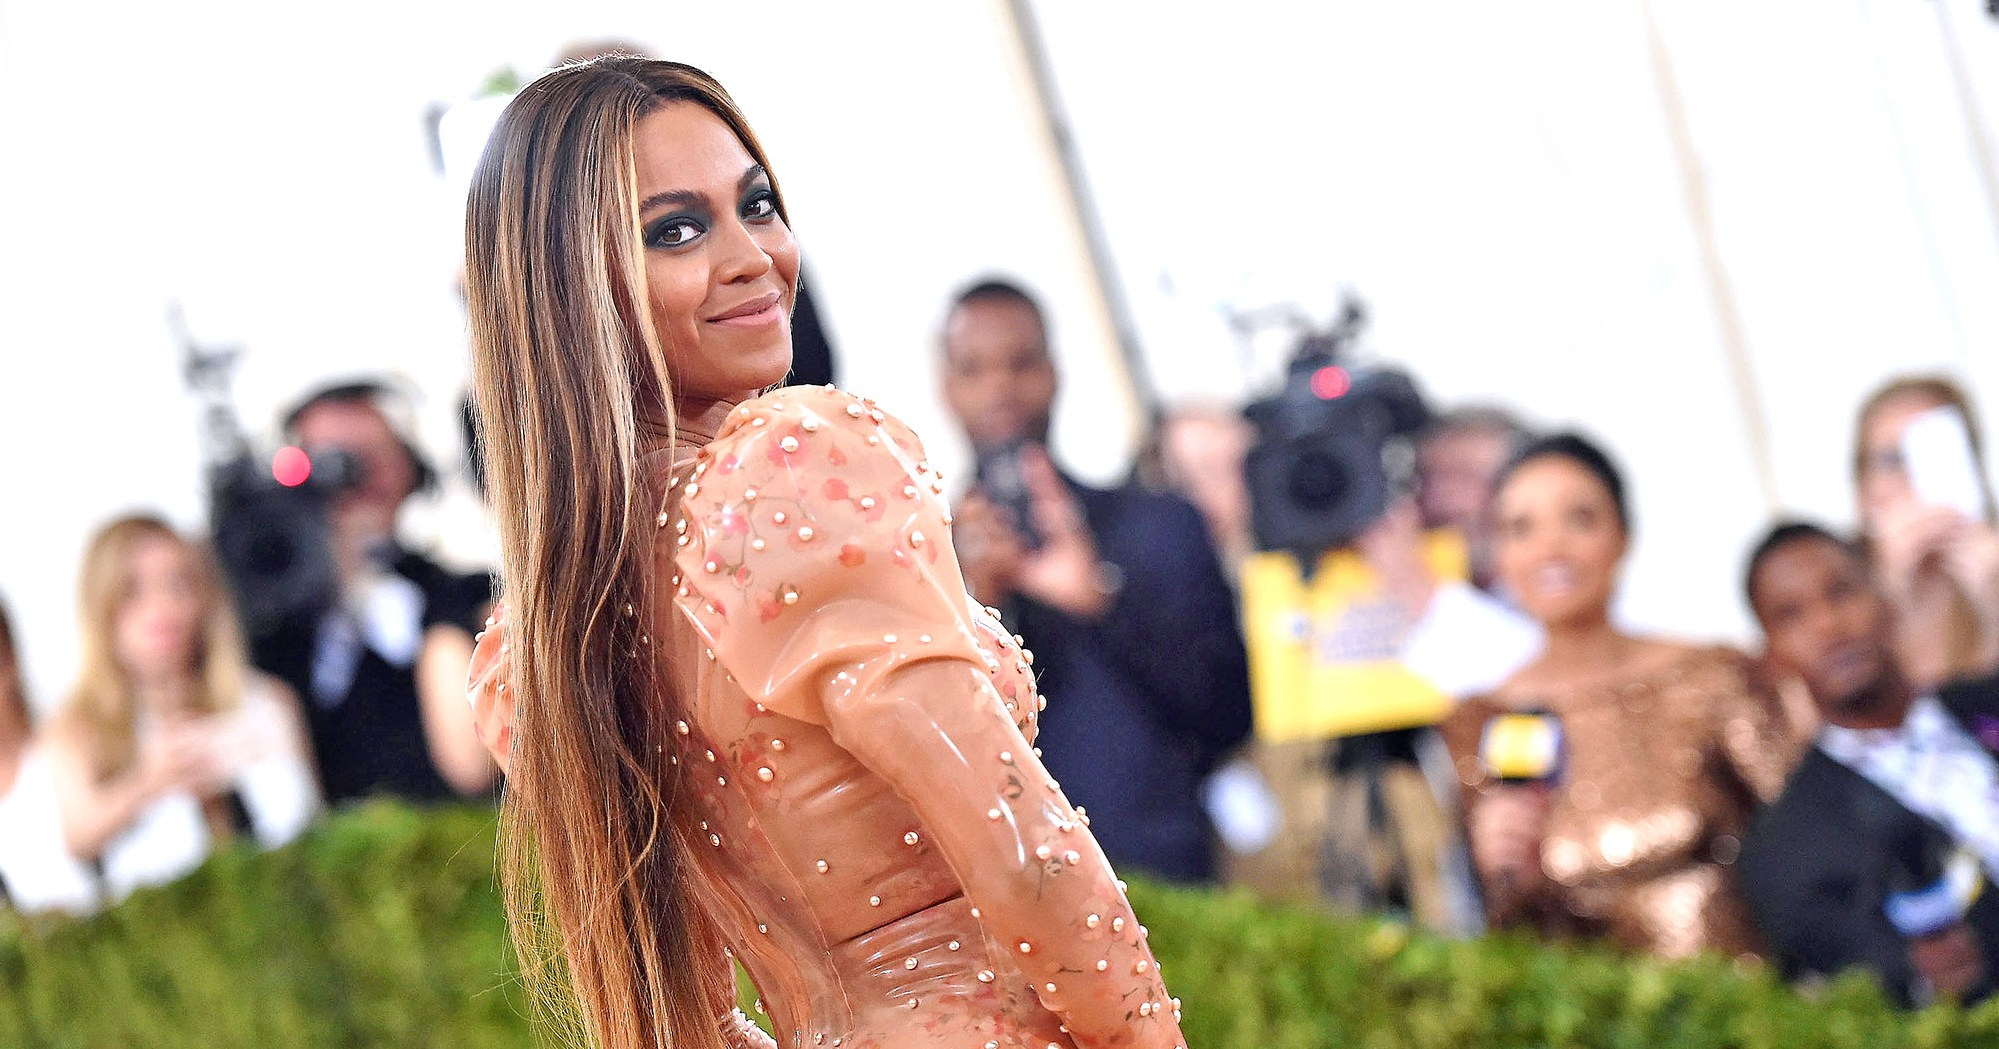 13 Times the Beyhive Attacked to Defend Beyonce